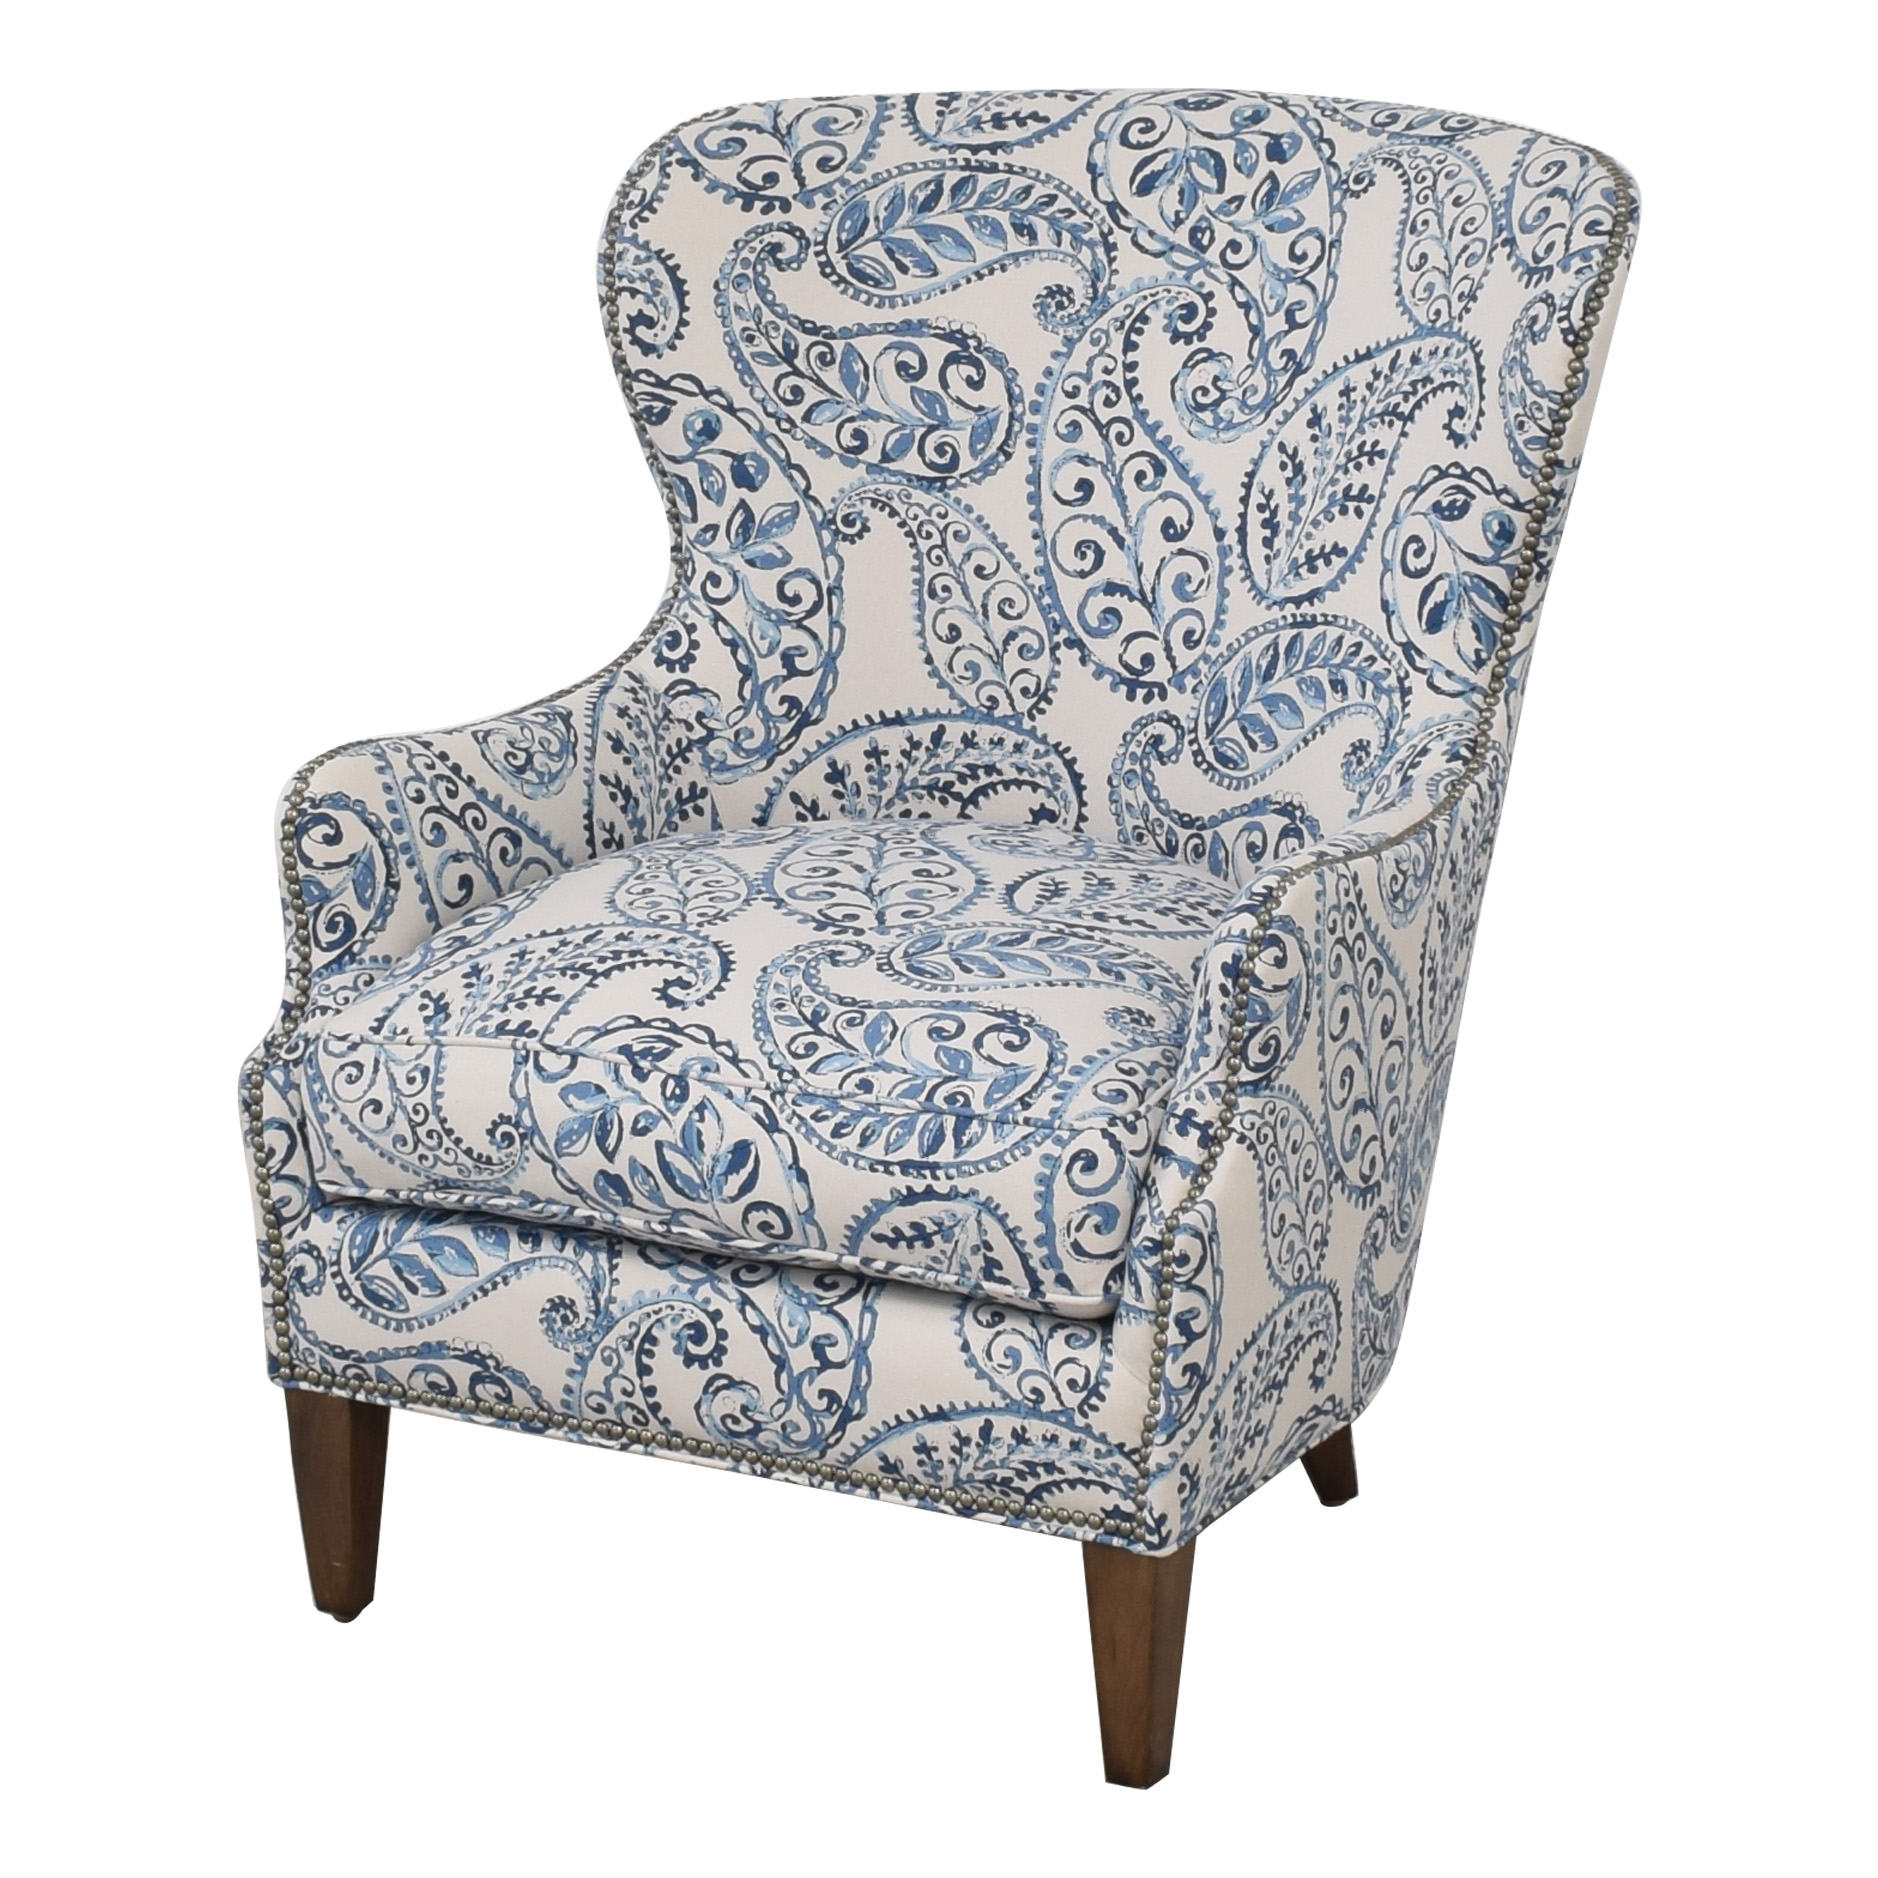 Crate & Barrel Crate & Barrel Brielle Wingback Chair used